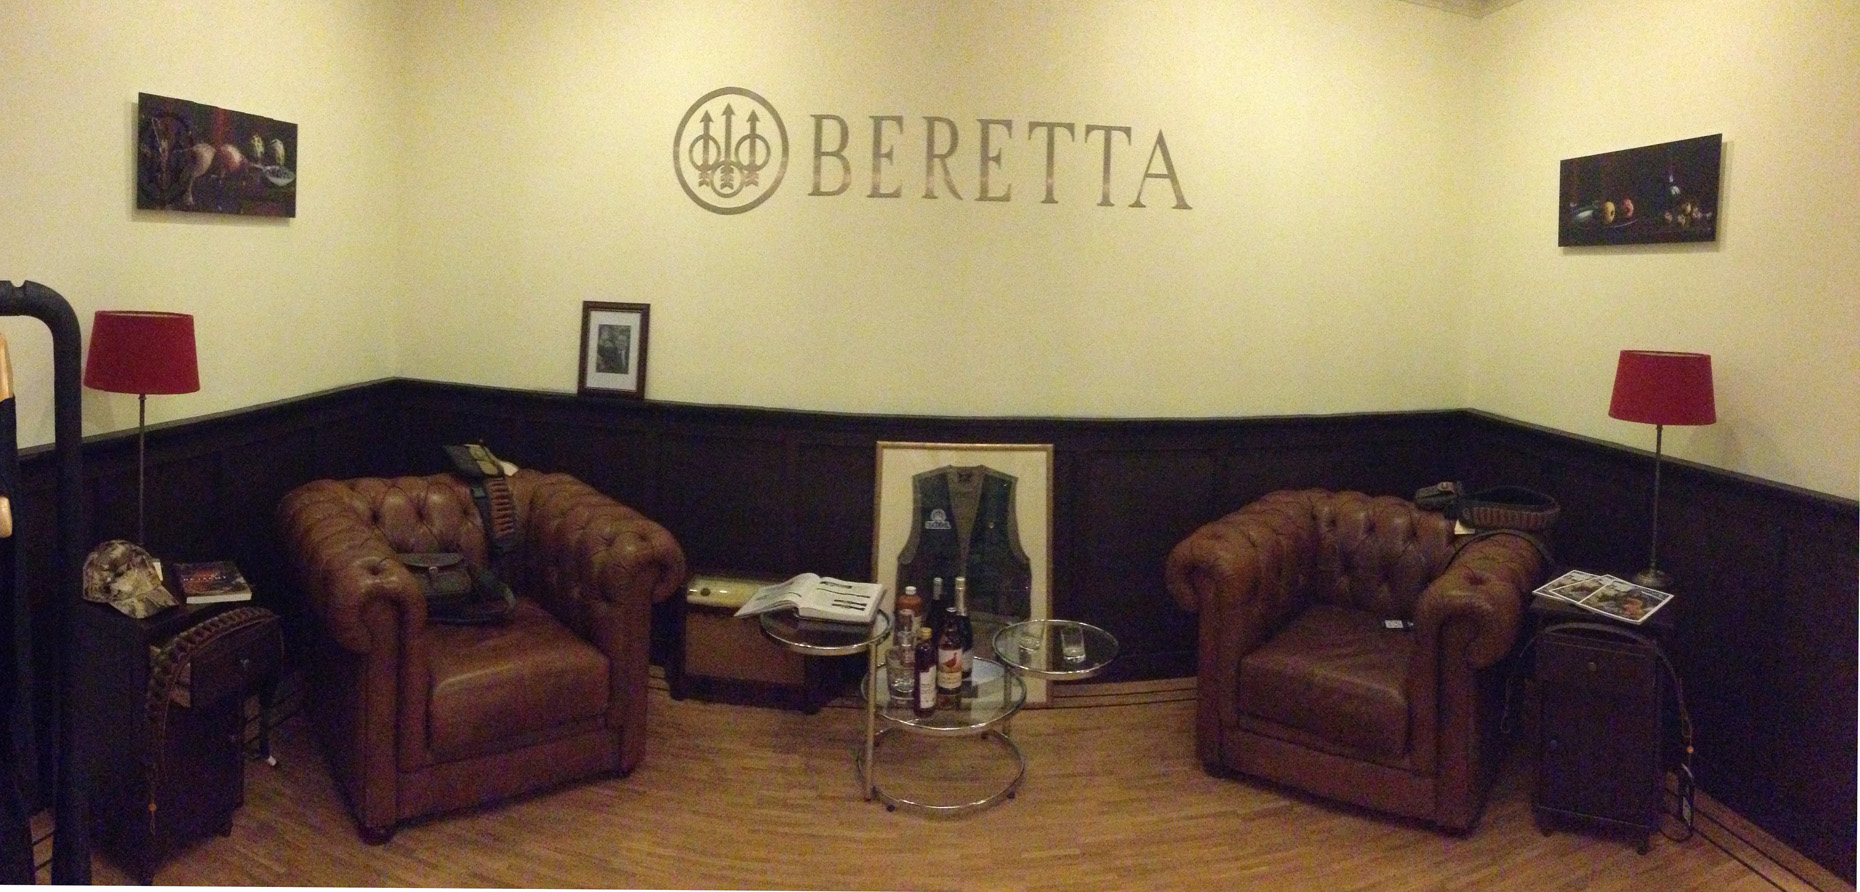 Stillifes in the Beretta Room